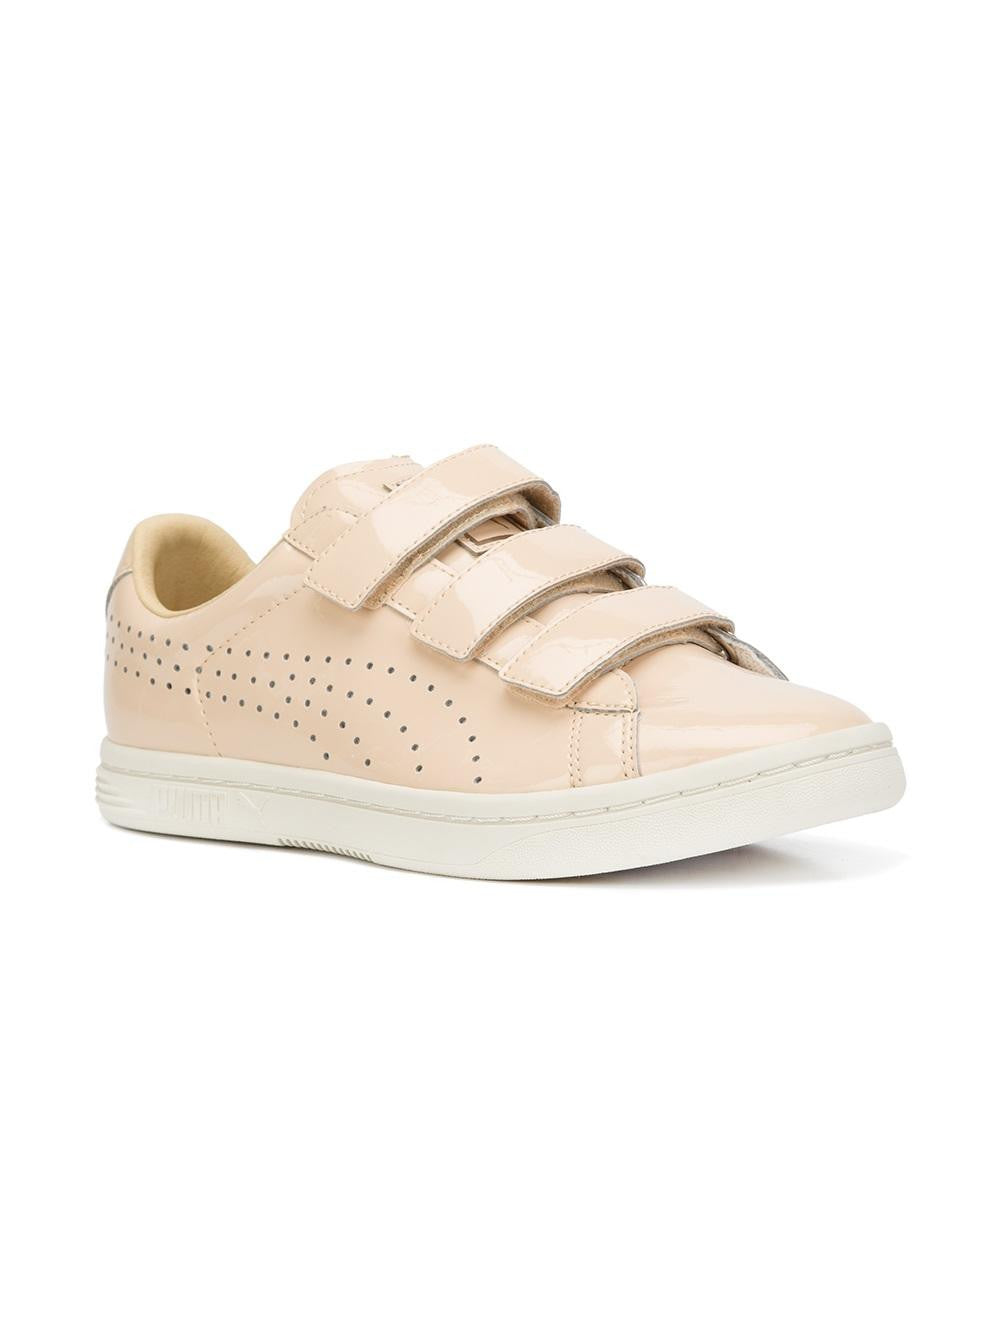 Court Star Velcro Sneaker | 36191201 COURT STAR VELCRO NUD